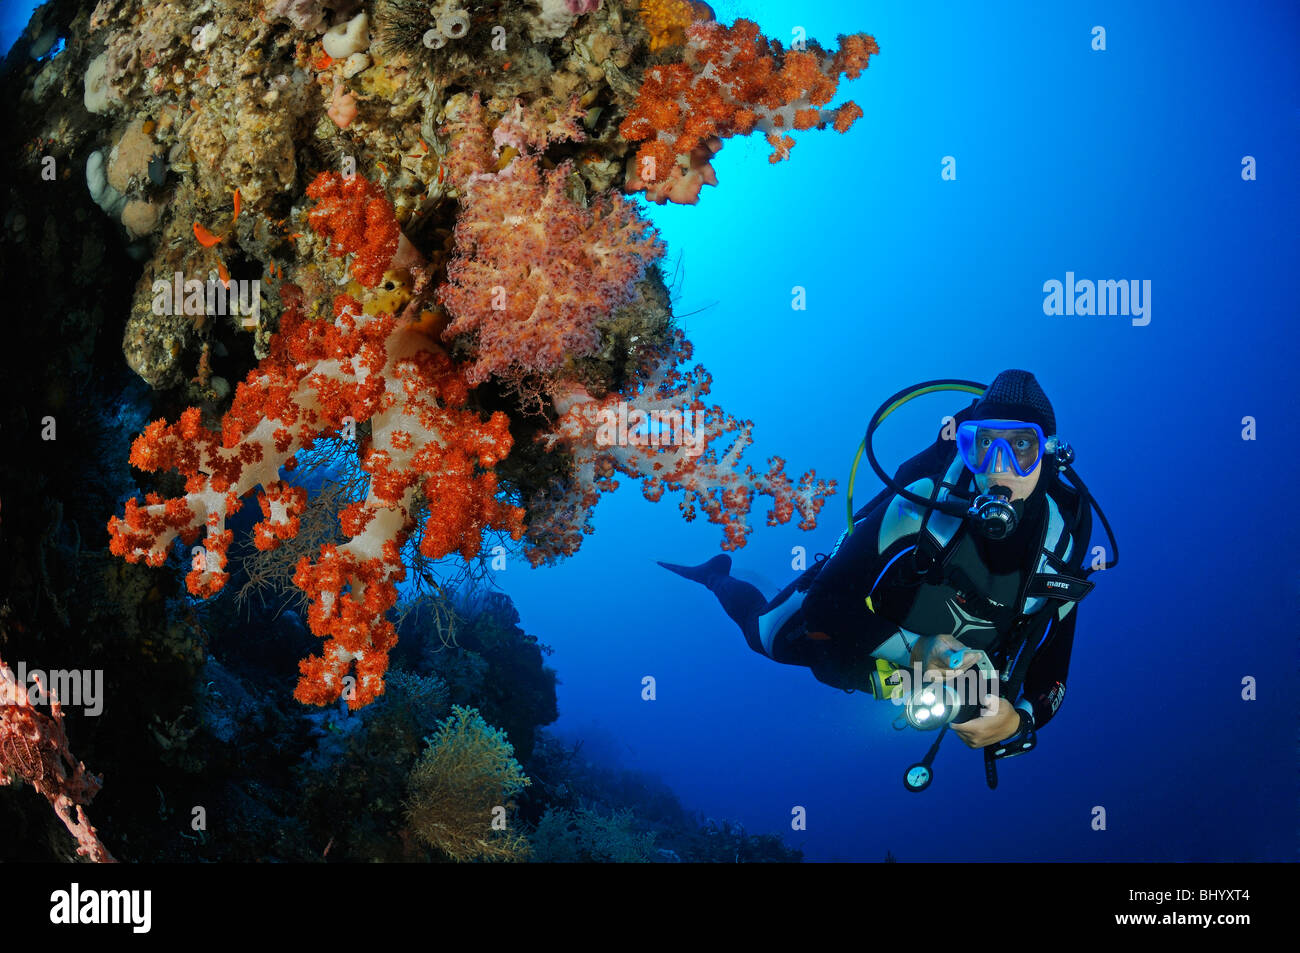 Dendronephthya klunzingeri, scuba diver with colorful coral reef and soft corals and barrel sponge, Bali - Stock Image